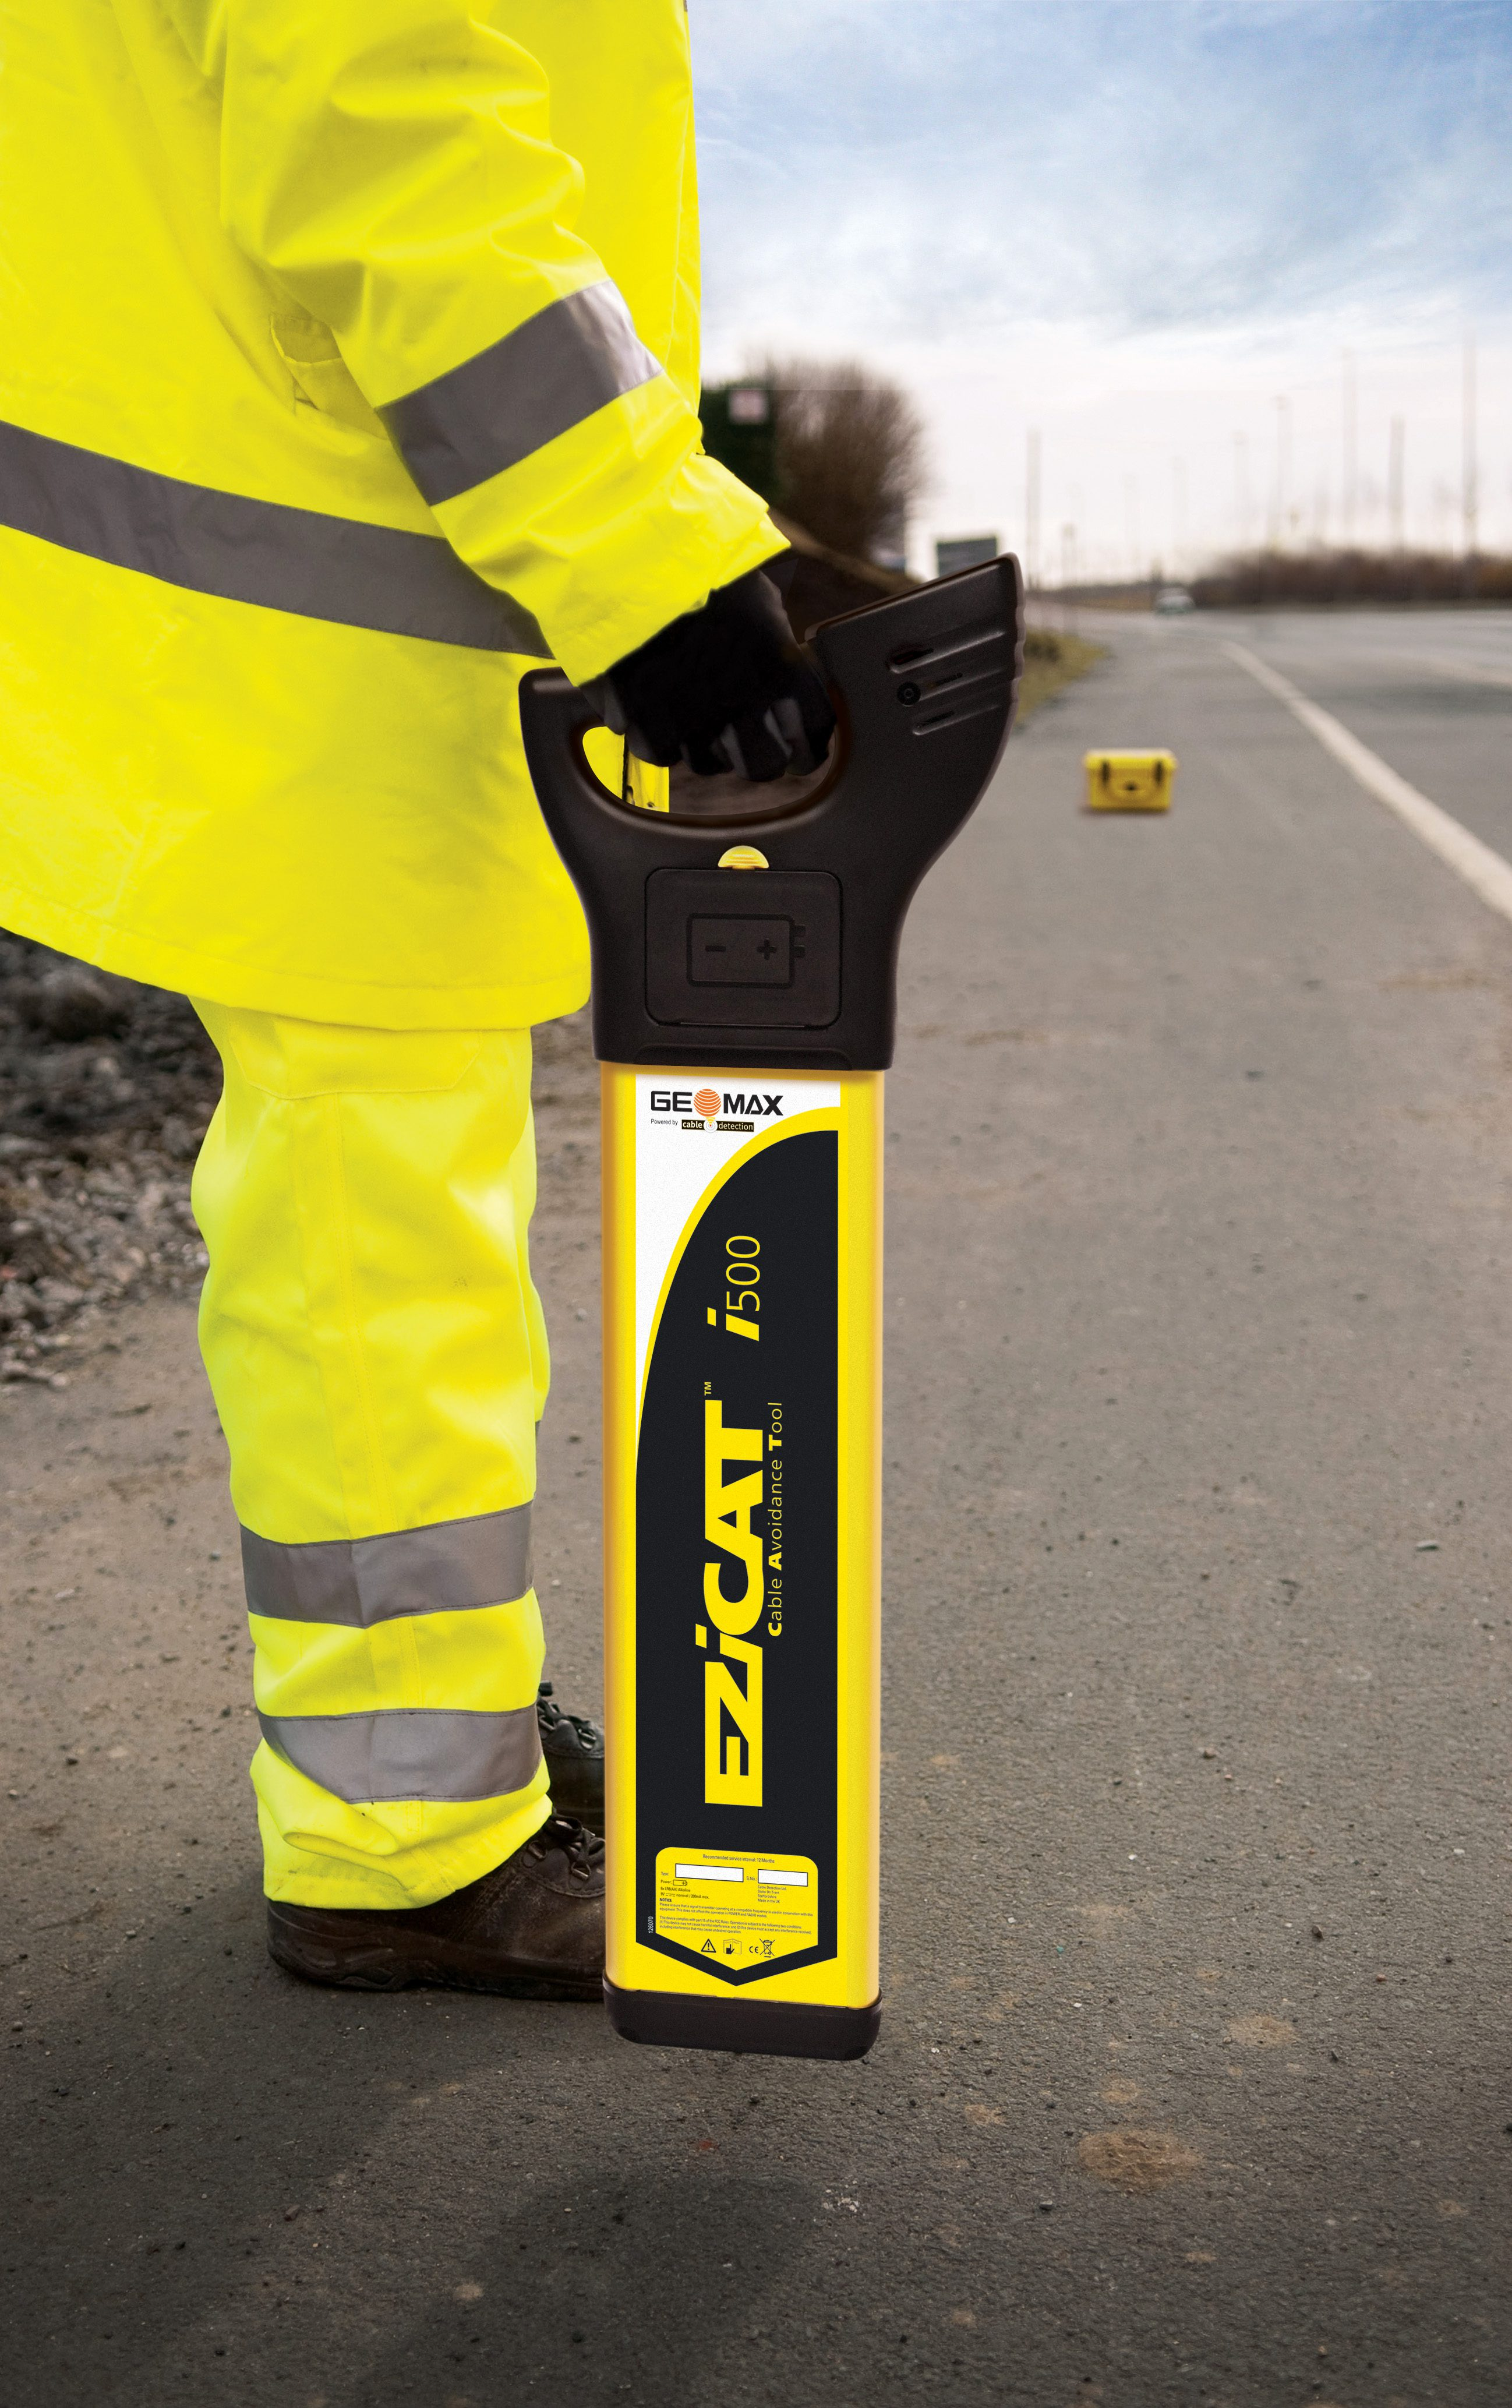 Geomax Launches Ezisystem Range Of Cable And Pipe Location